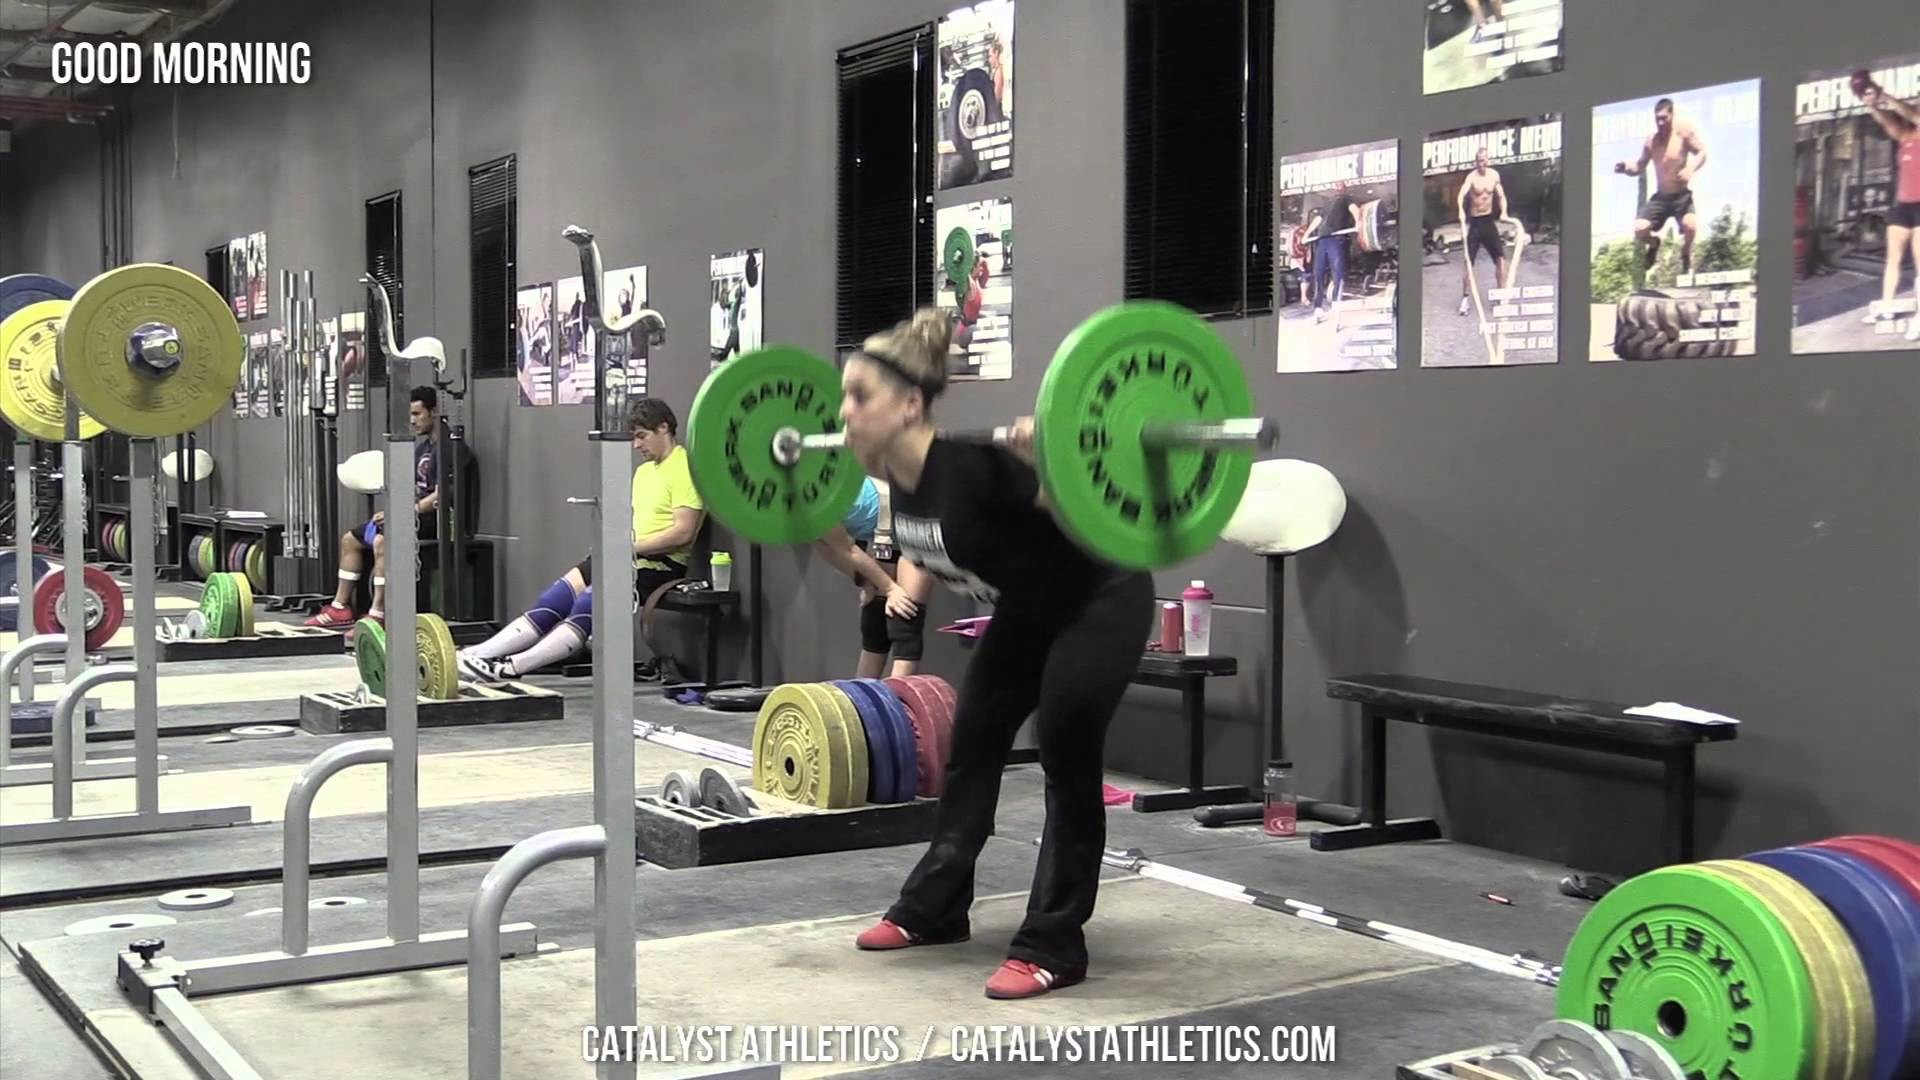 Good Morning – Olympic Weightlifting Exercise Library – Catalyst Athletics  – YouTube